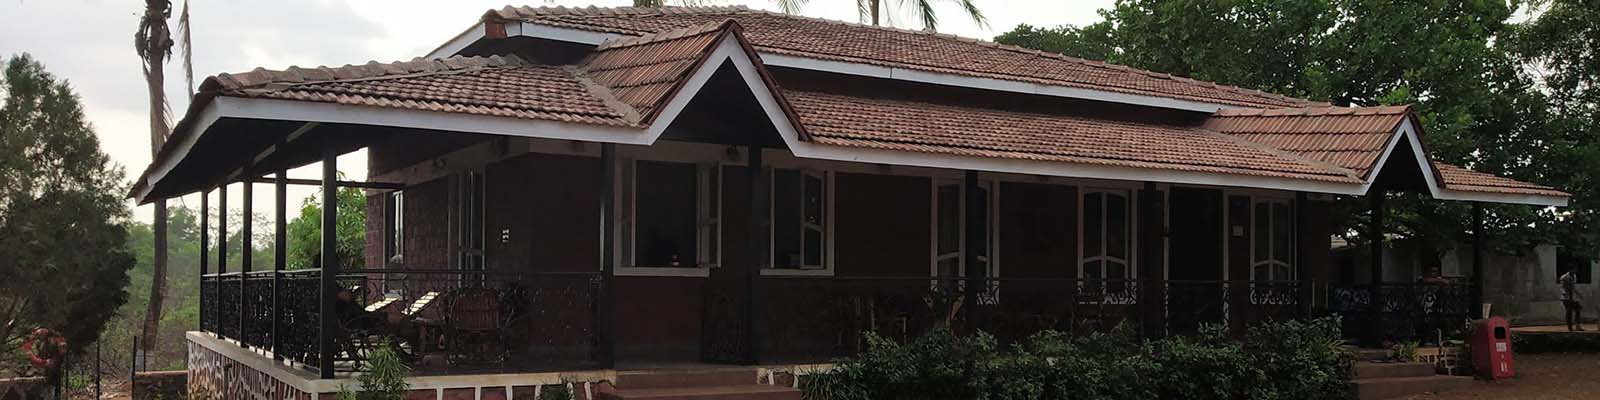 Bungalows in Kolad